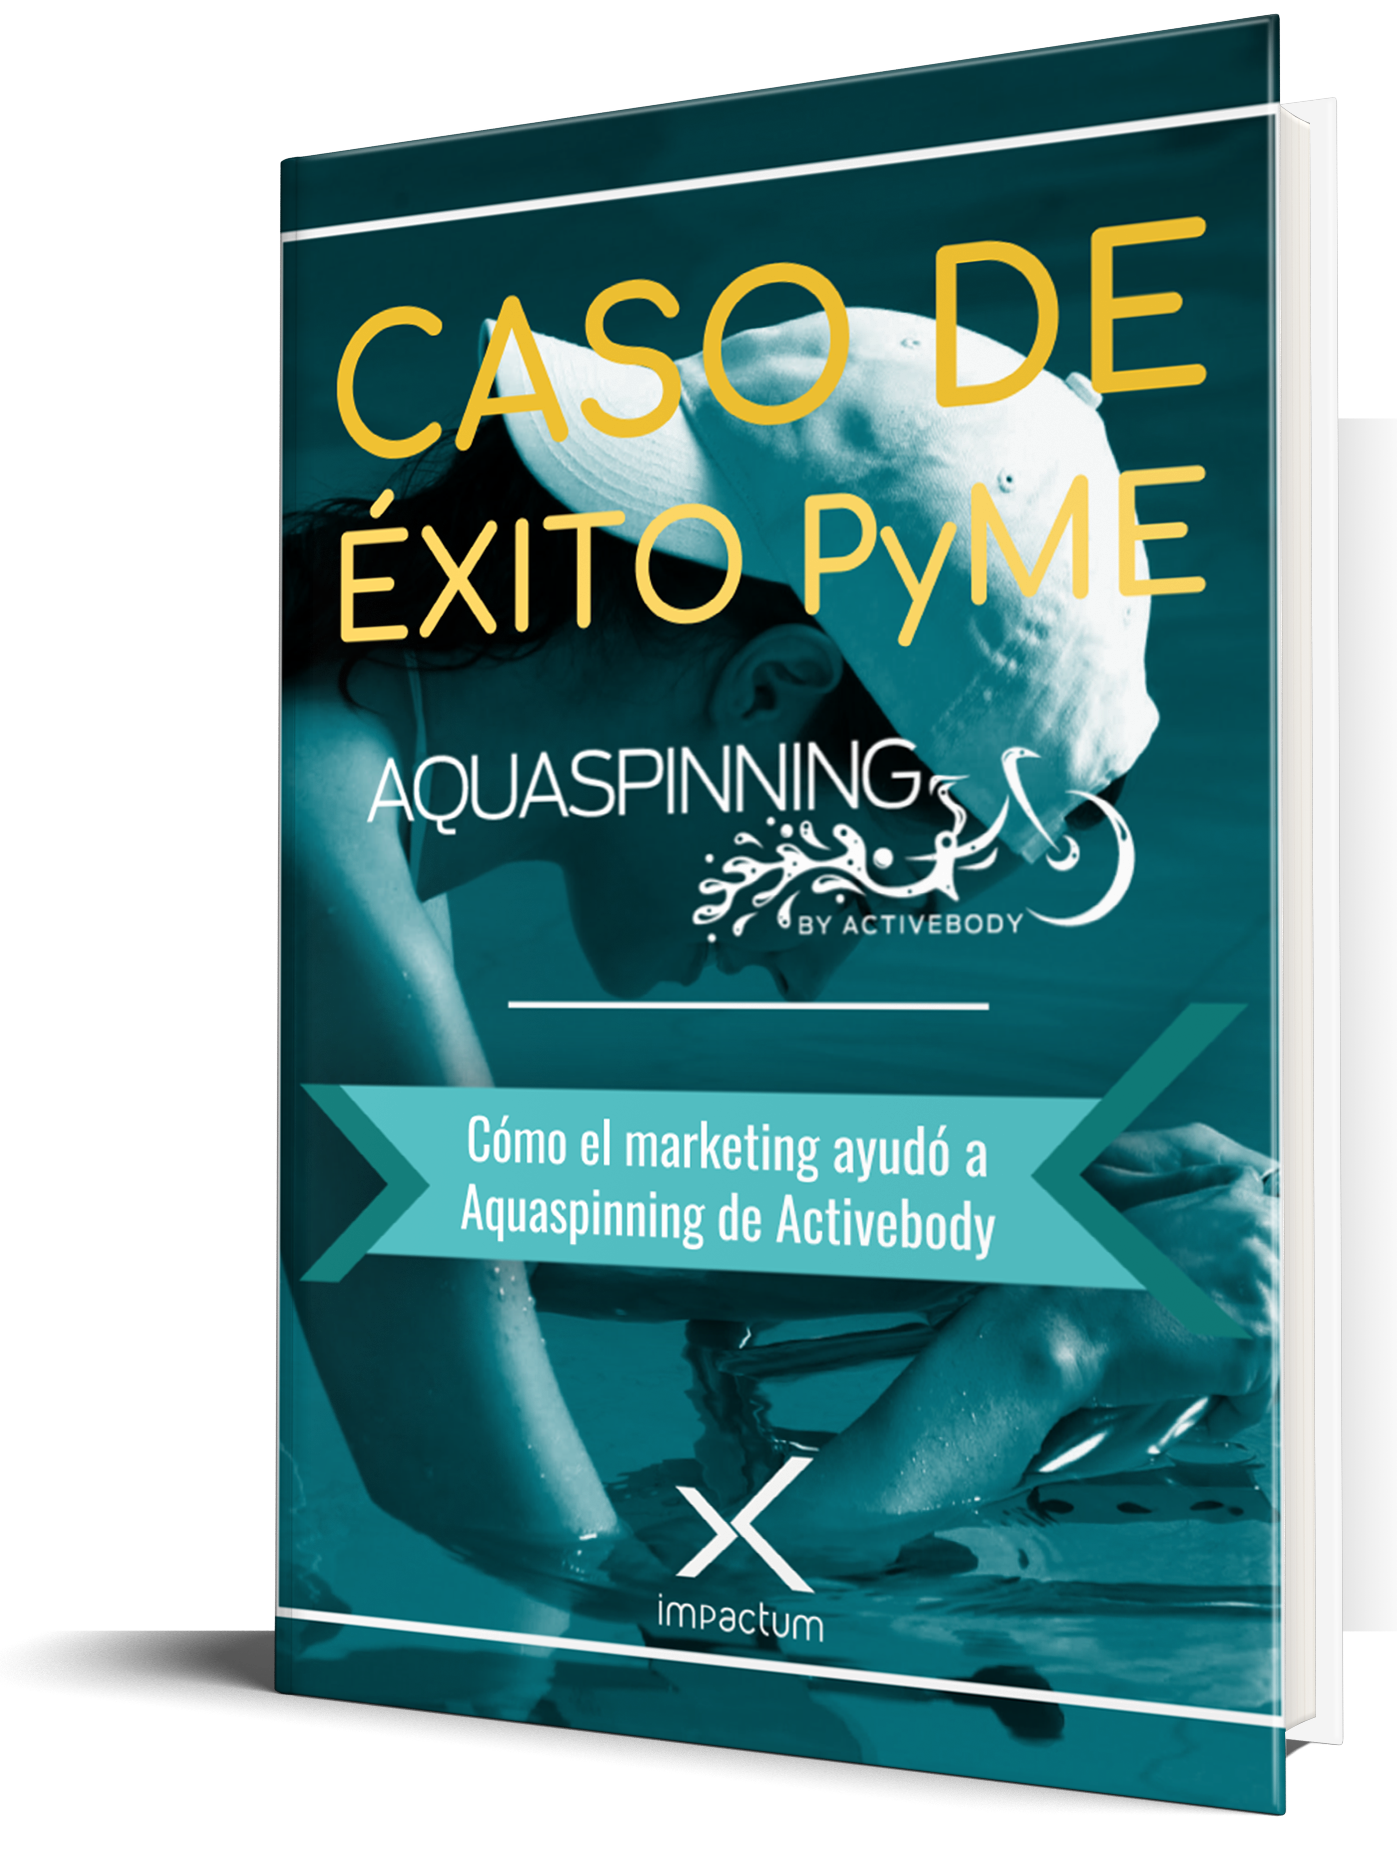 inbound-marketing-CASO-de-exito